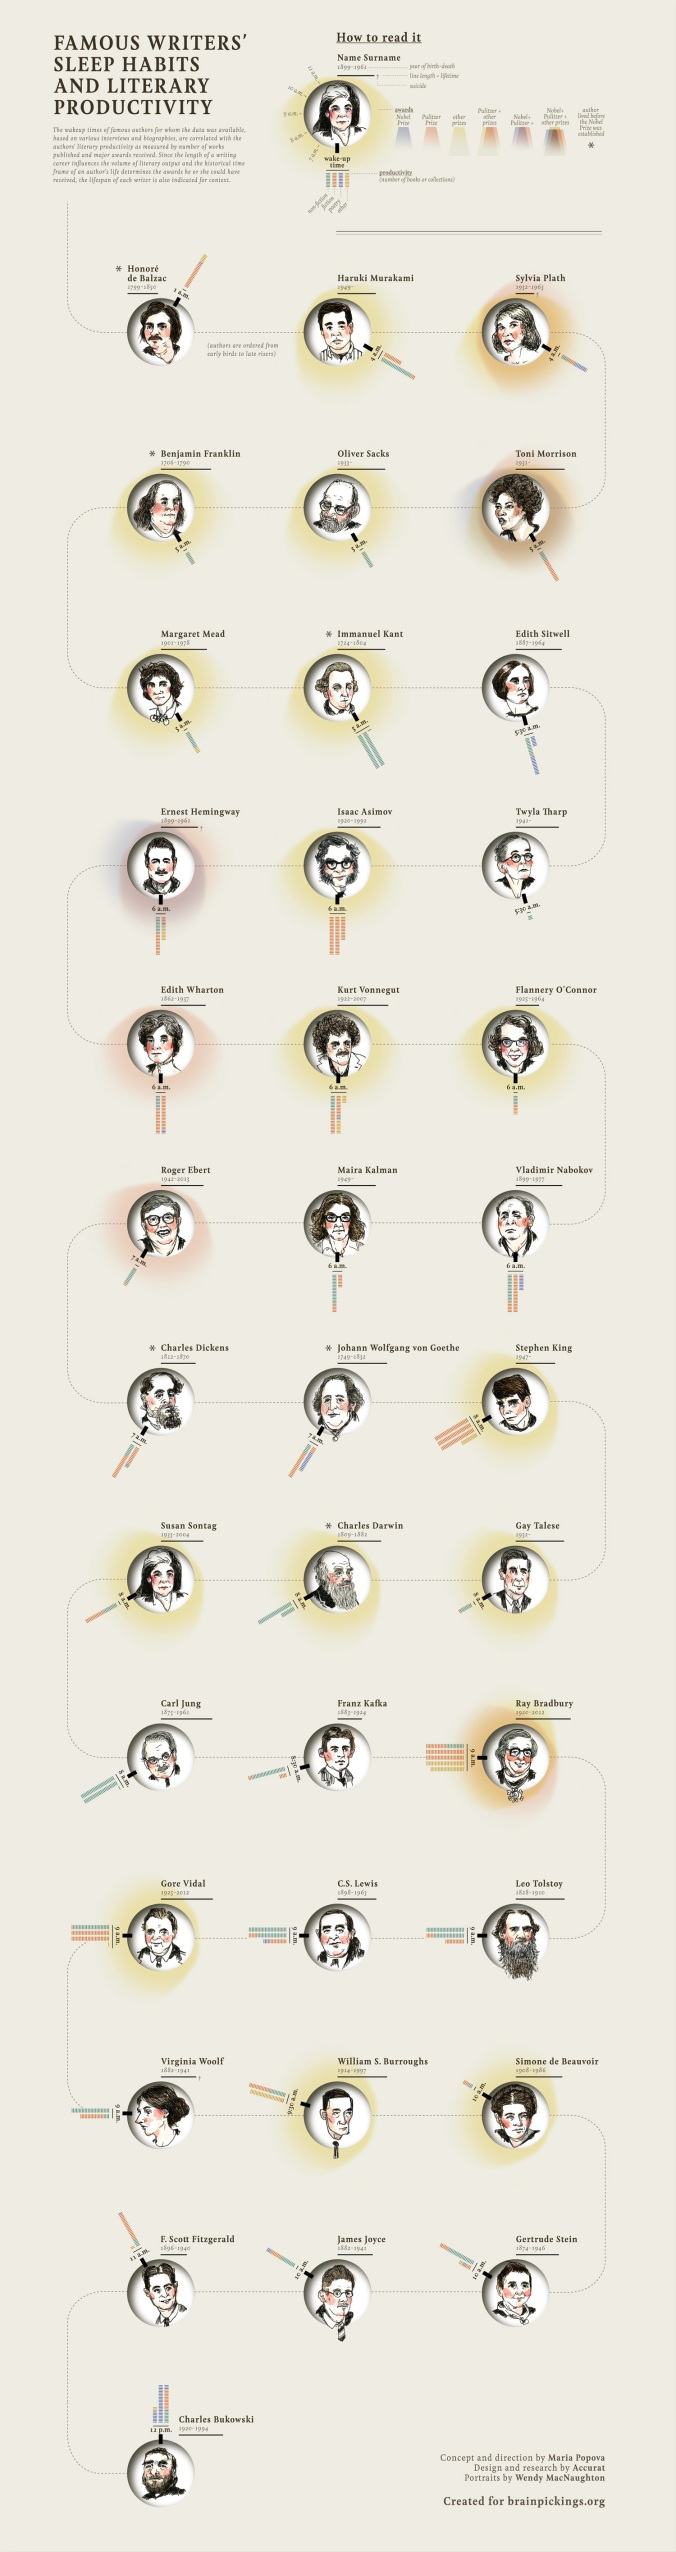 Famous Writers' Sleep Habits vs. Literary Productivity, Visualized by Maria Popova